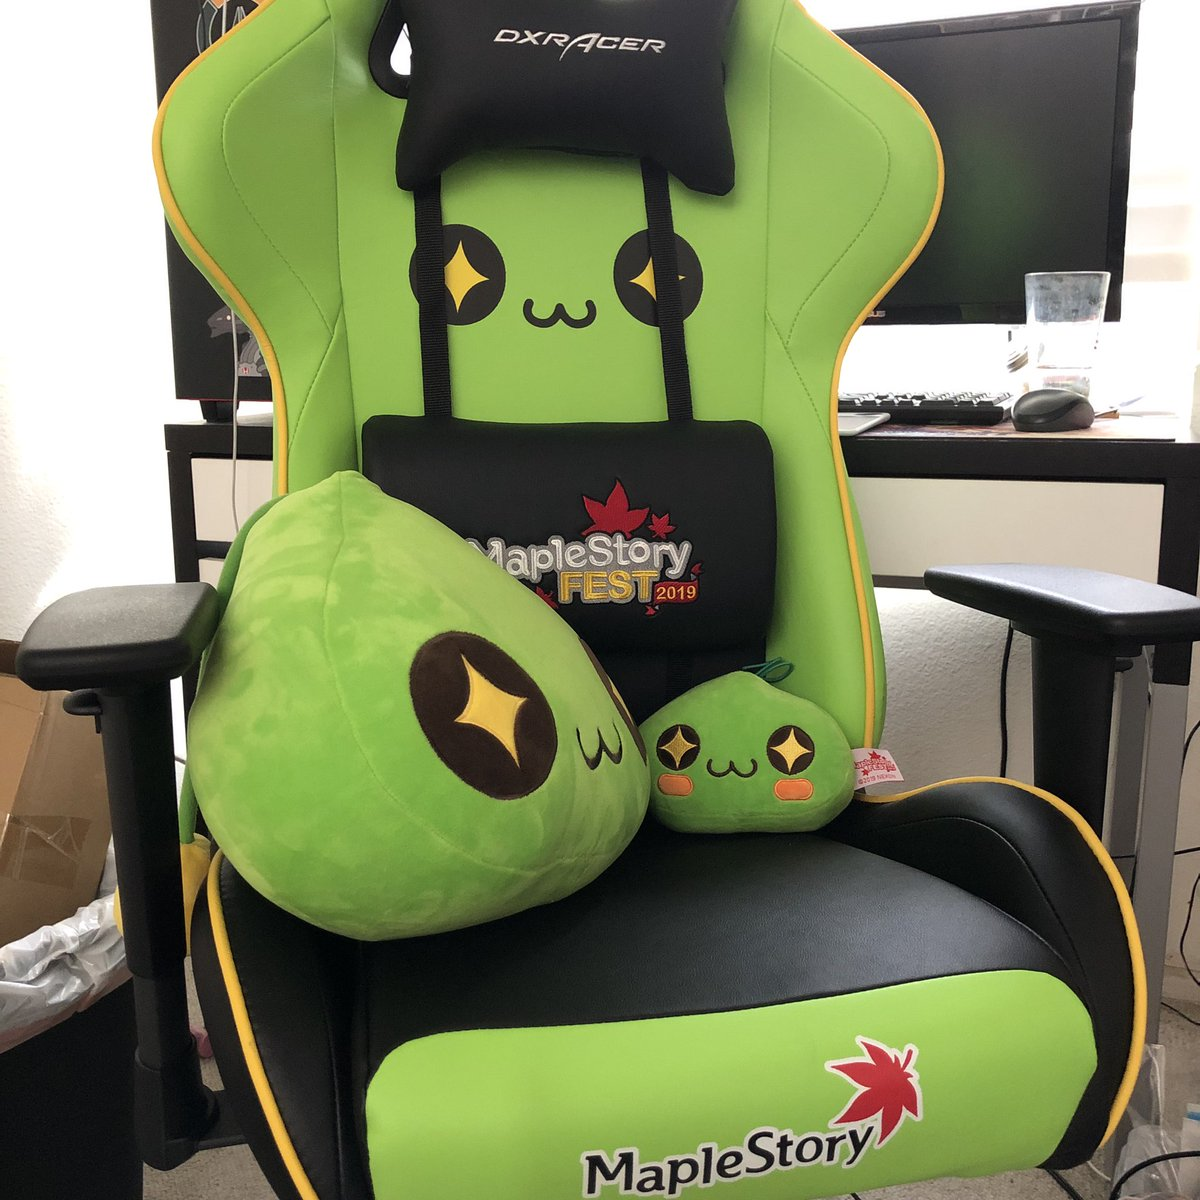 Thank you again to @PlayMaple2, @MapleStory, @DXRacer for